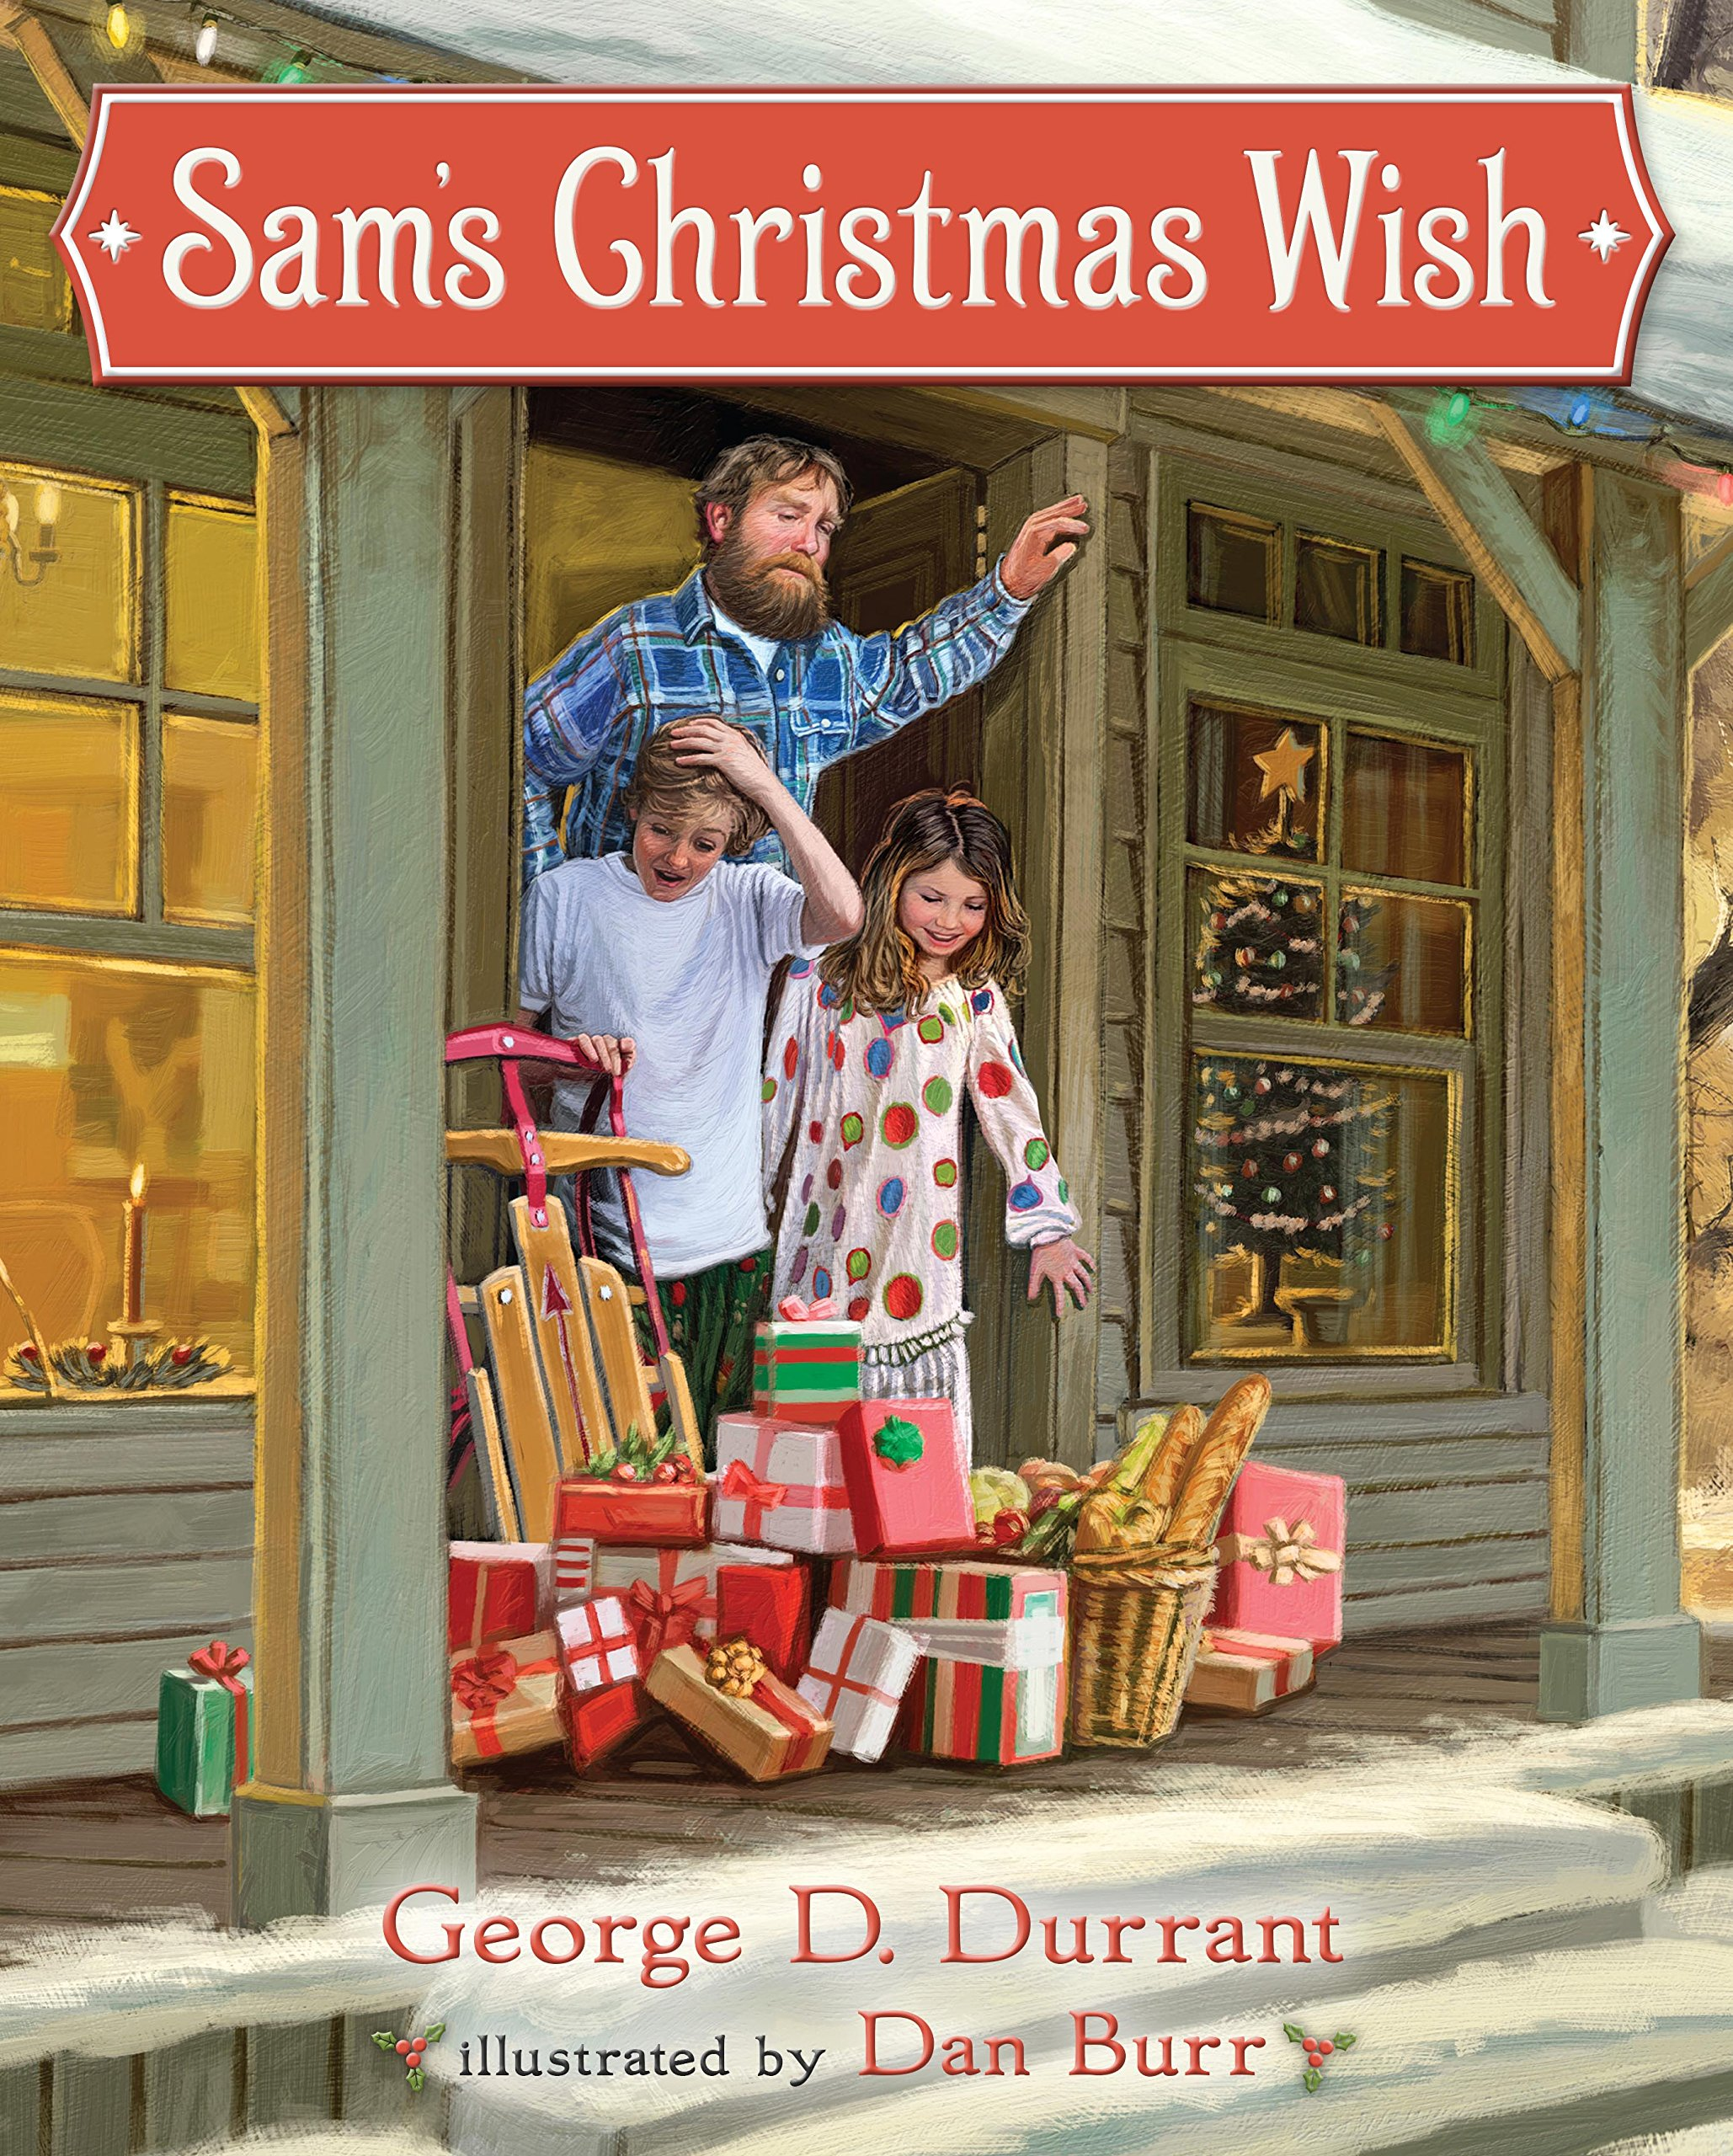 Sam's Christmas Wish Blog Tour